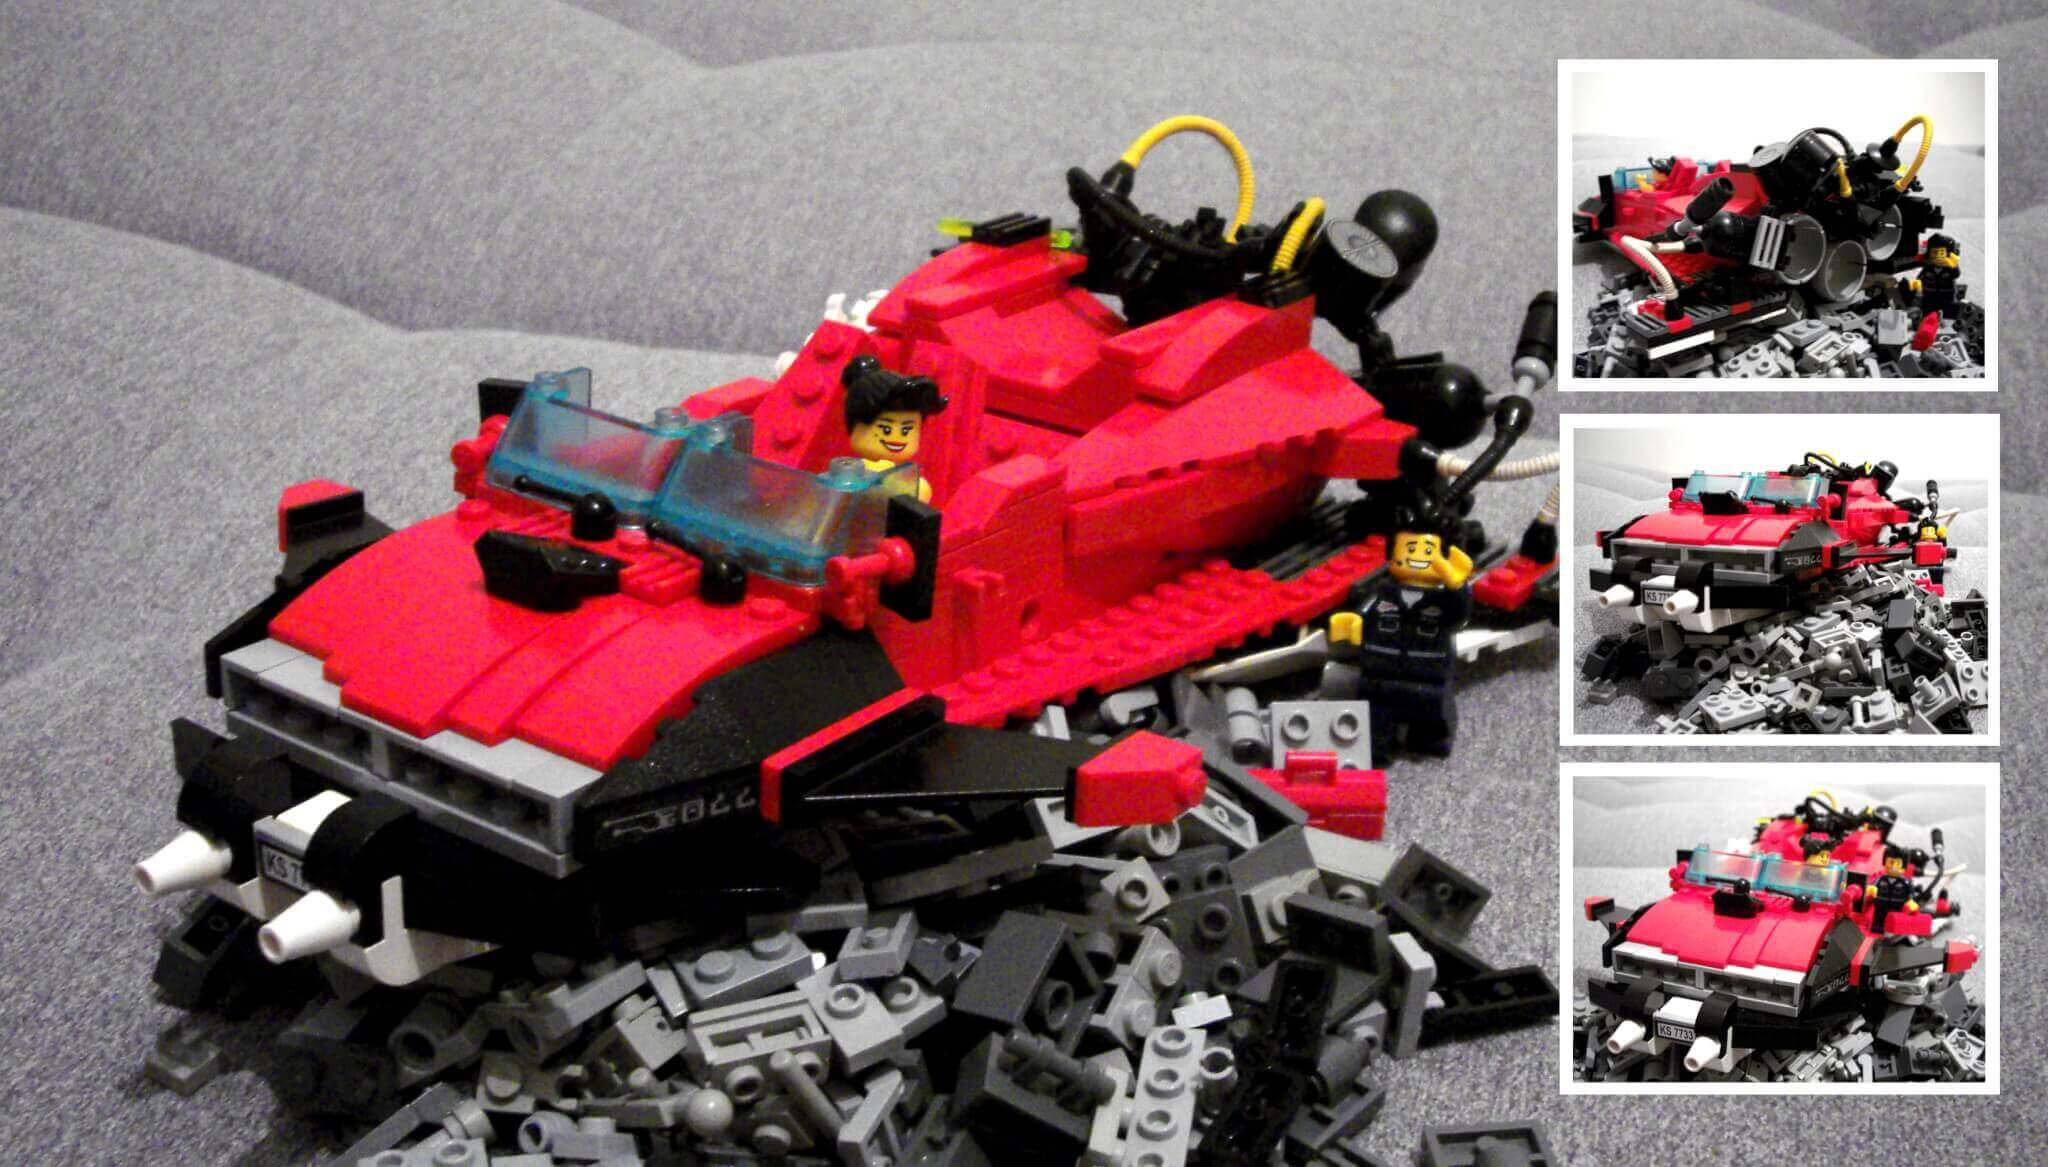 how-to-make-a-car-from-lego-blocks-moc-lego-car-models.jpg